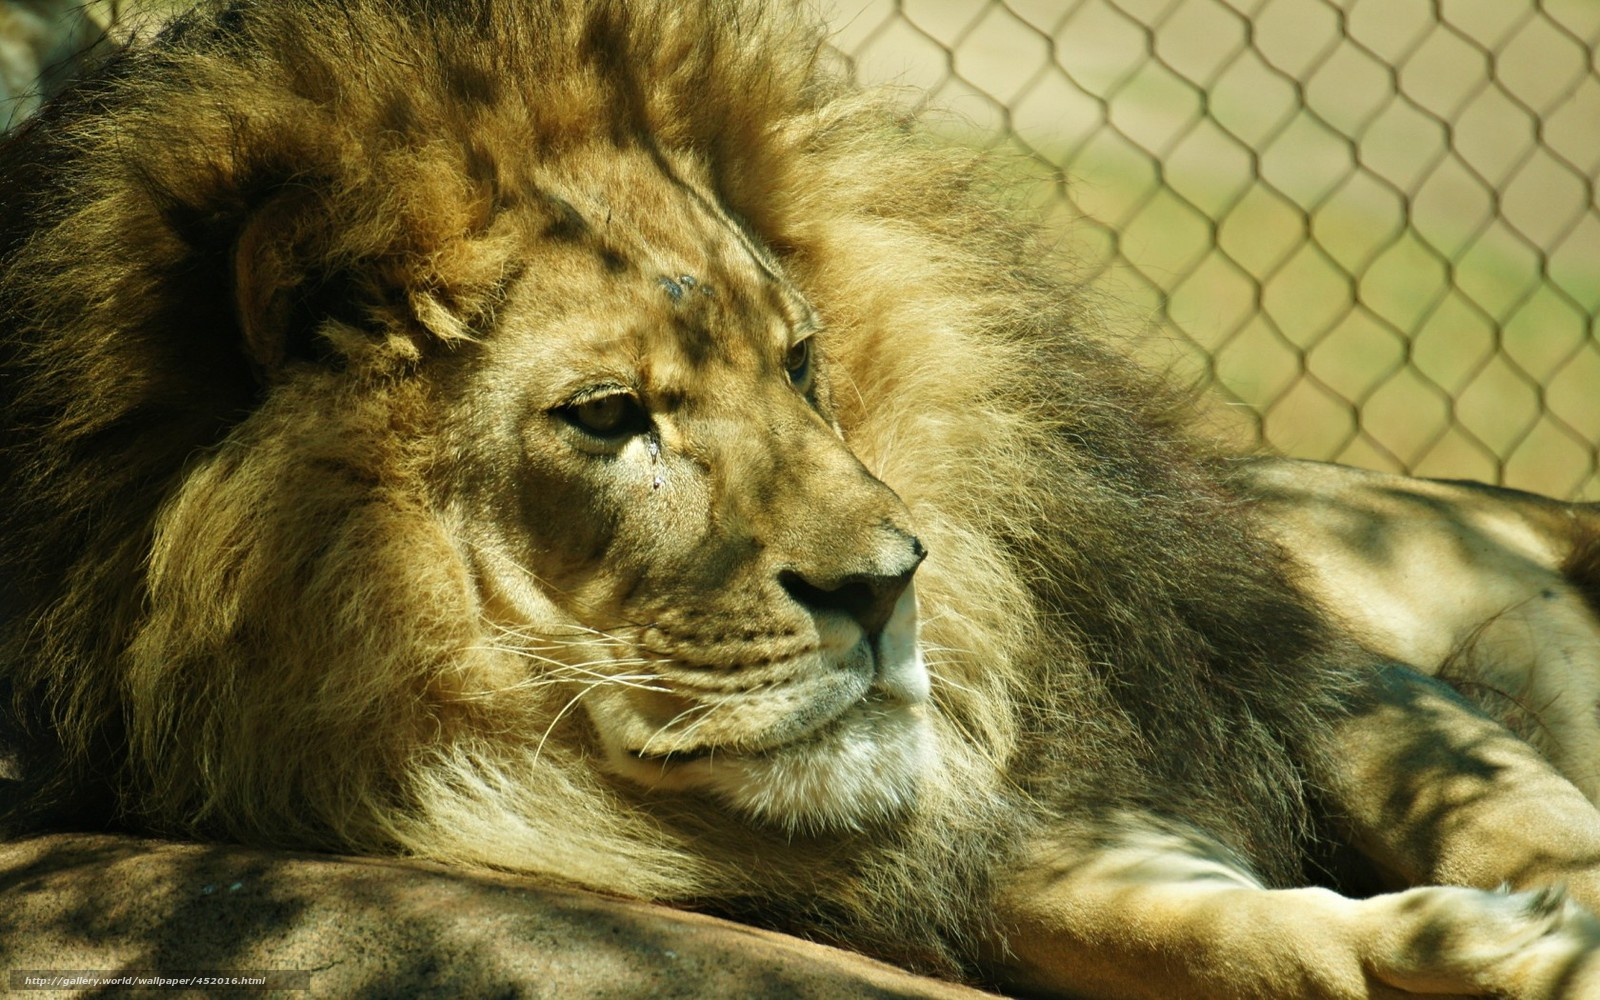 Download Wallpaper Lion Zoo Background Free Desktop Wallpaper In The